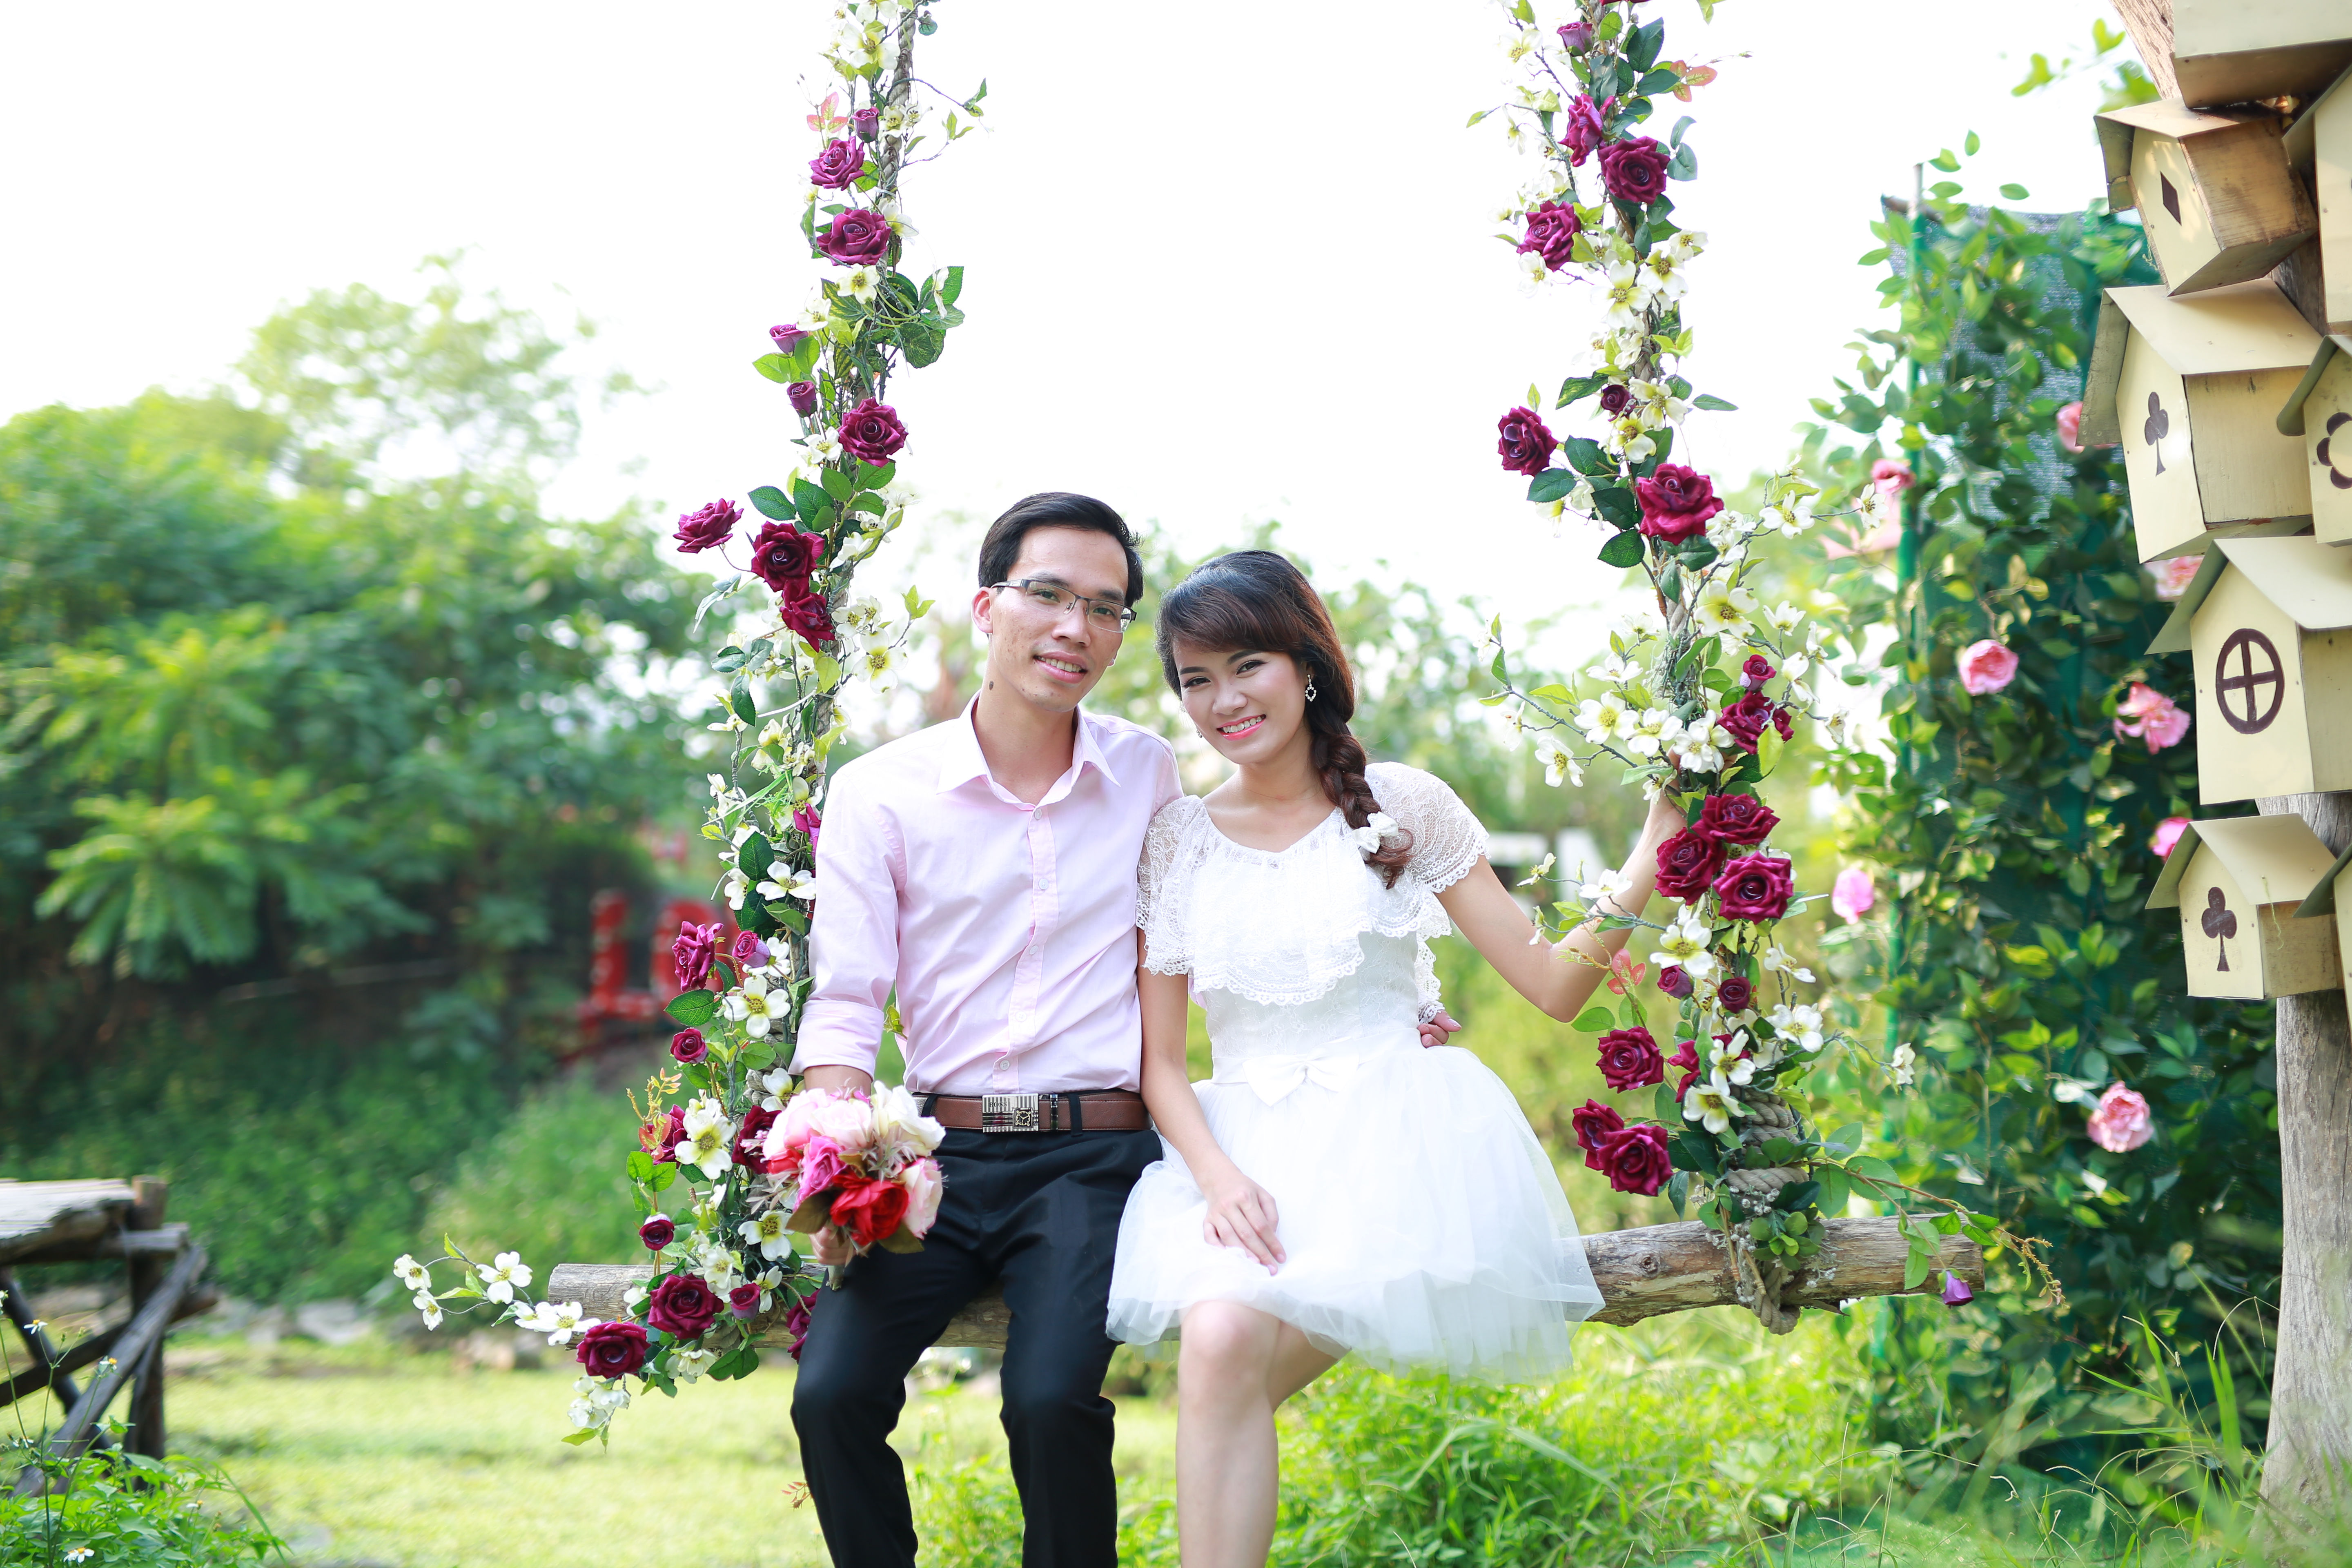 Wife and Husband, Pose, Romantic, Wedding, Wife, HQ Photo